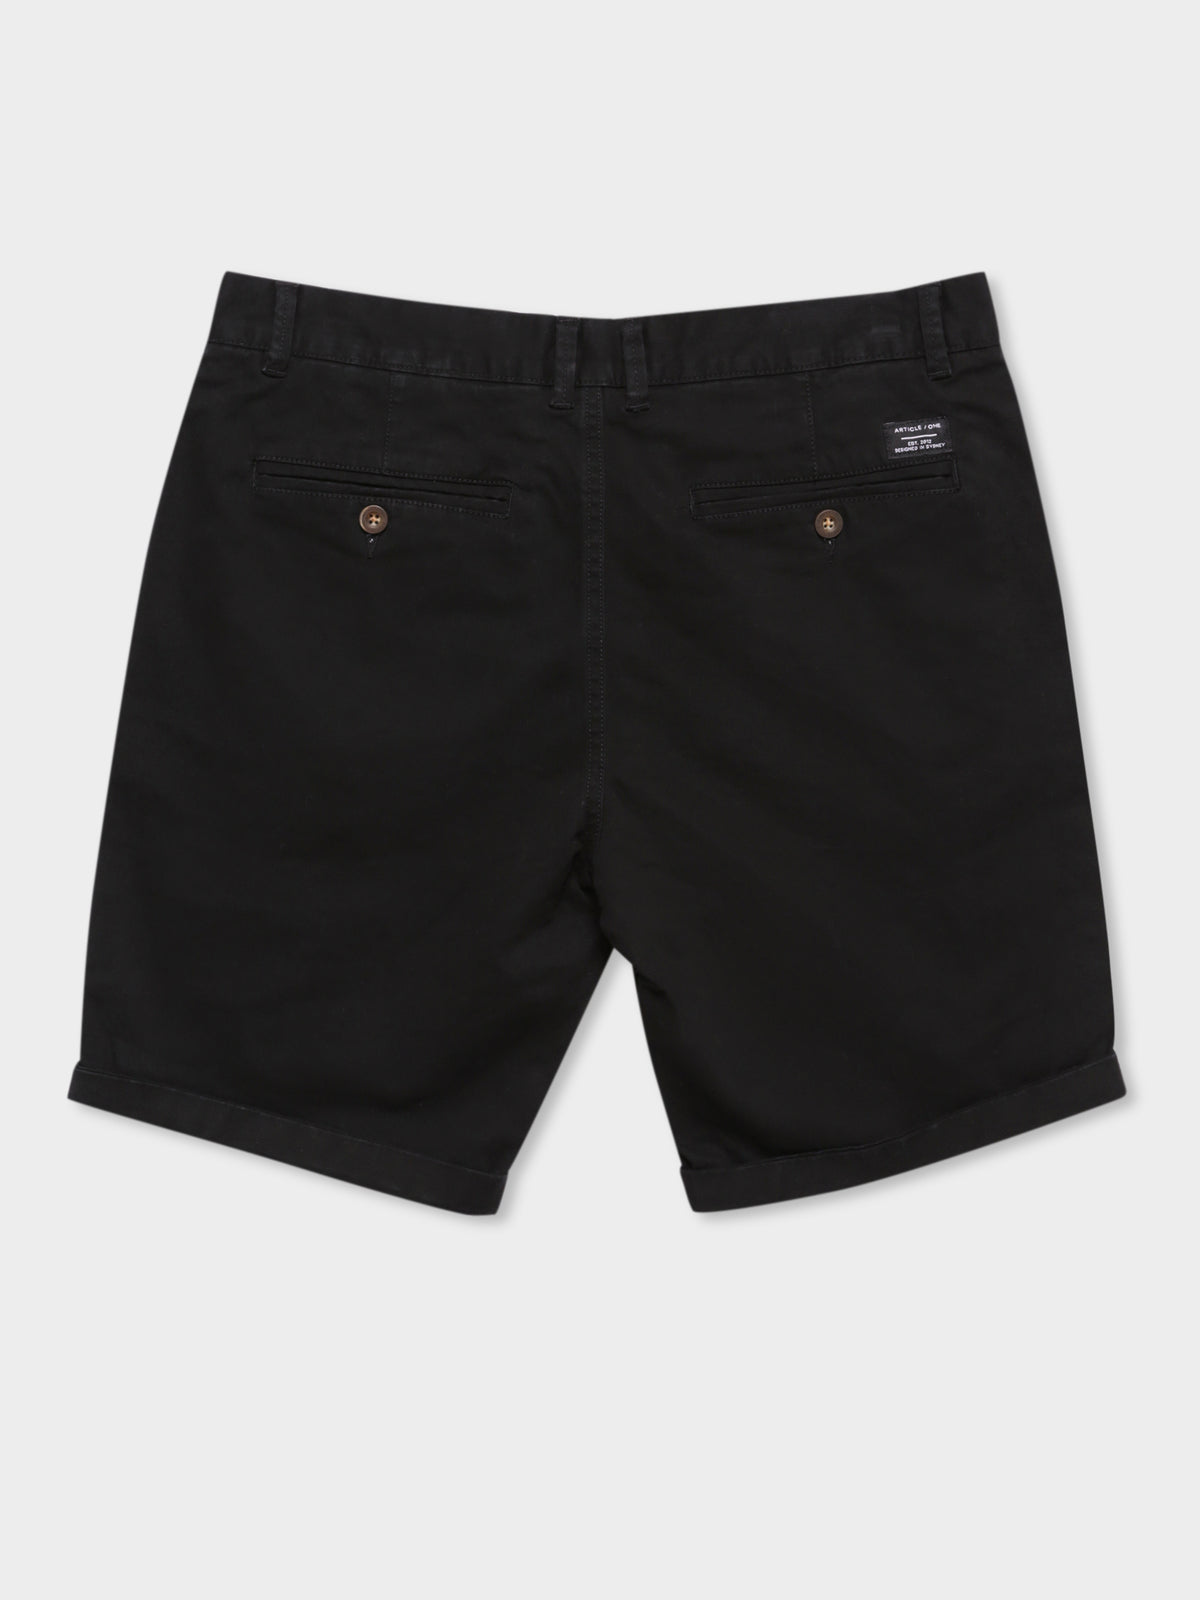 Hunter Chino Shorts in Black